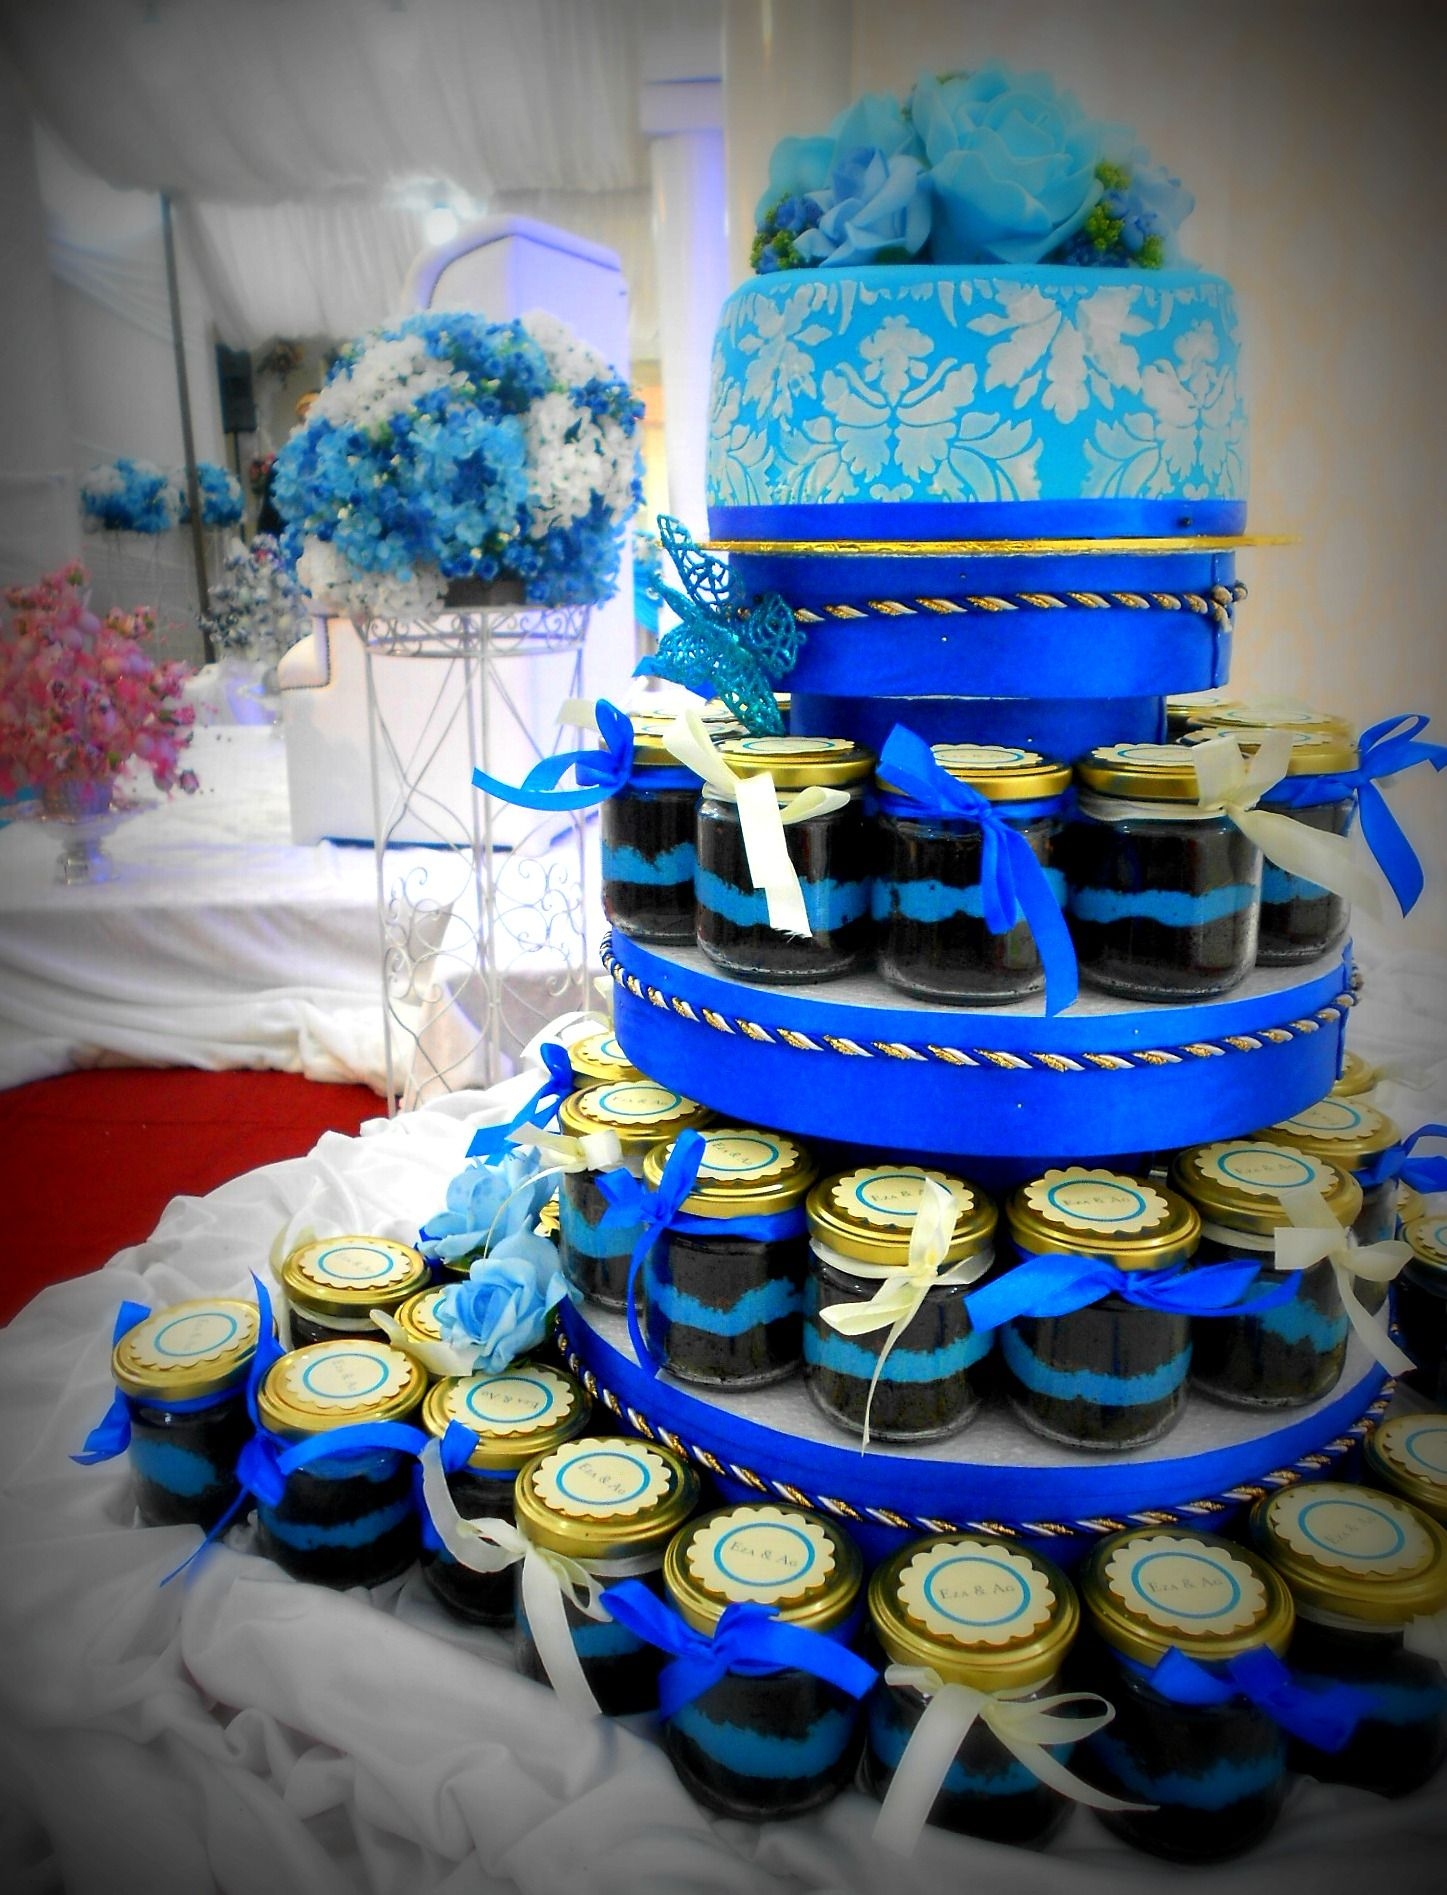 Cake in a jar for a wedding google search when do we cut the